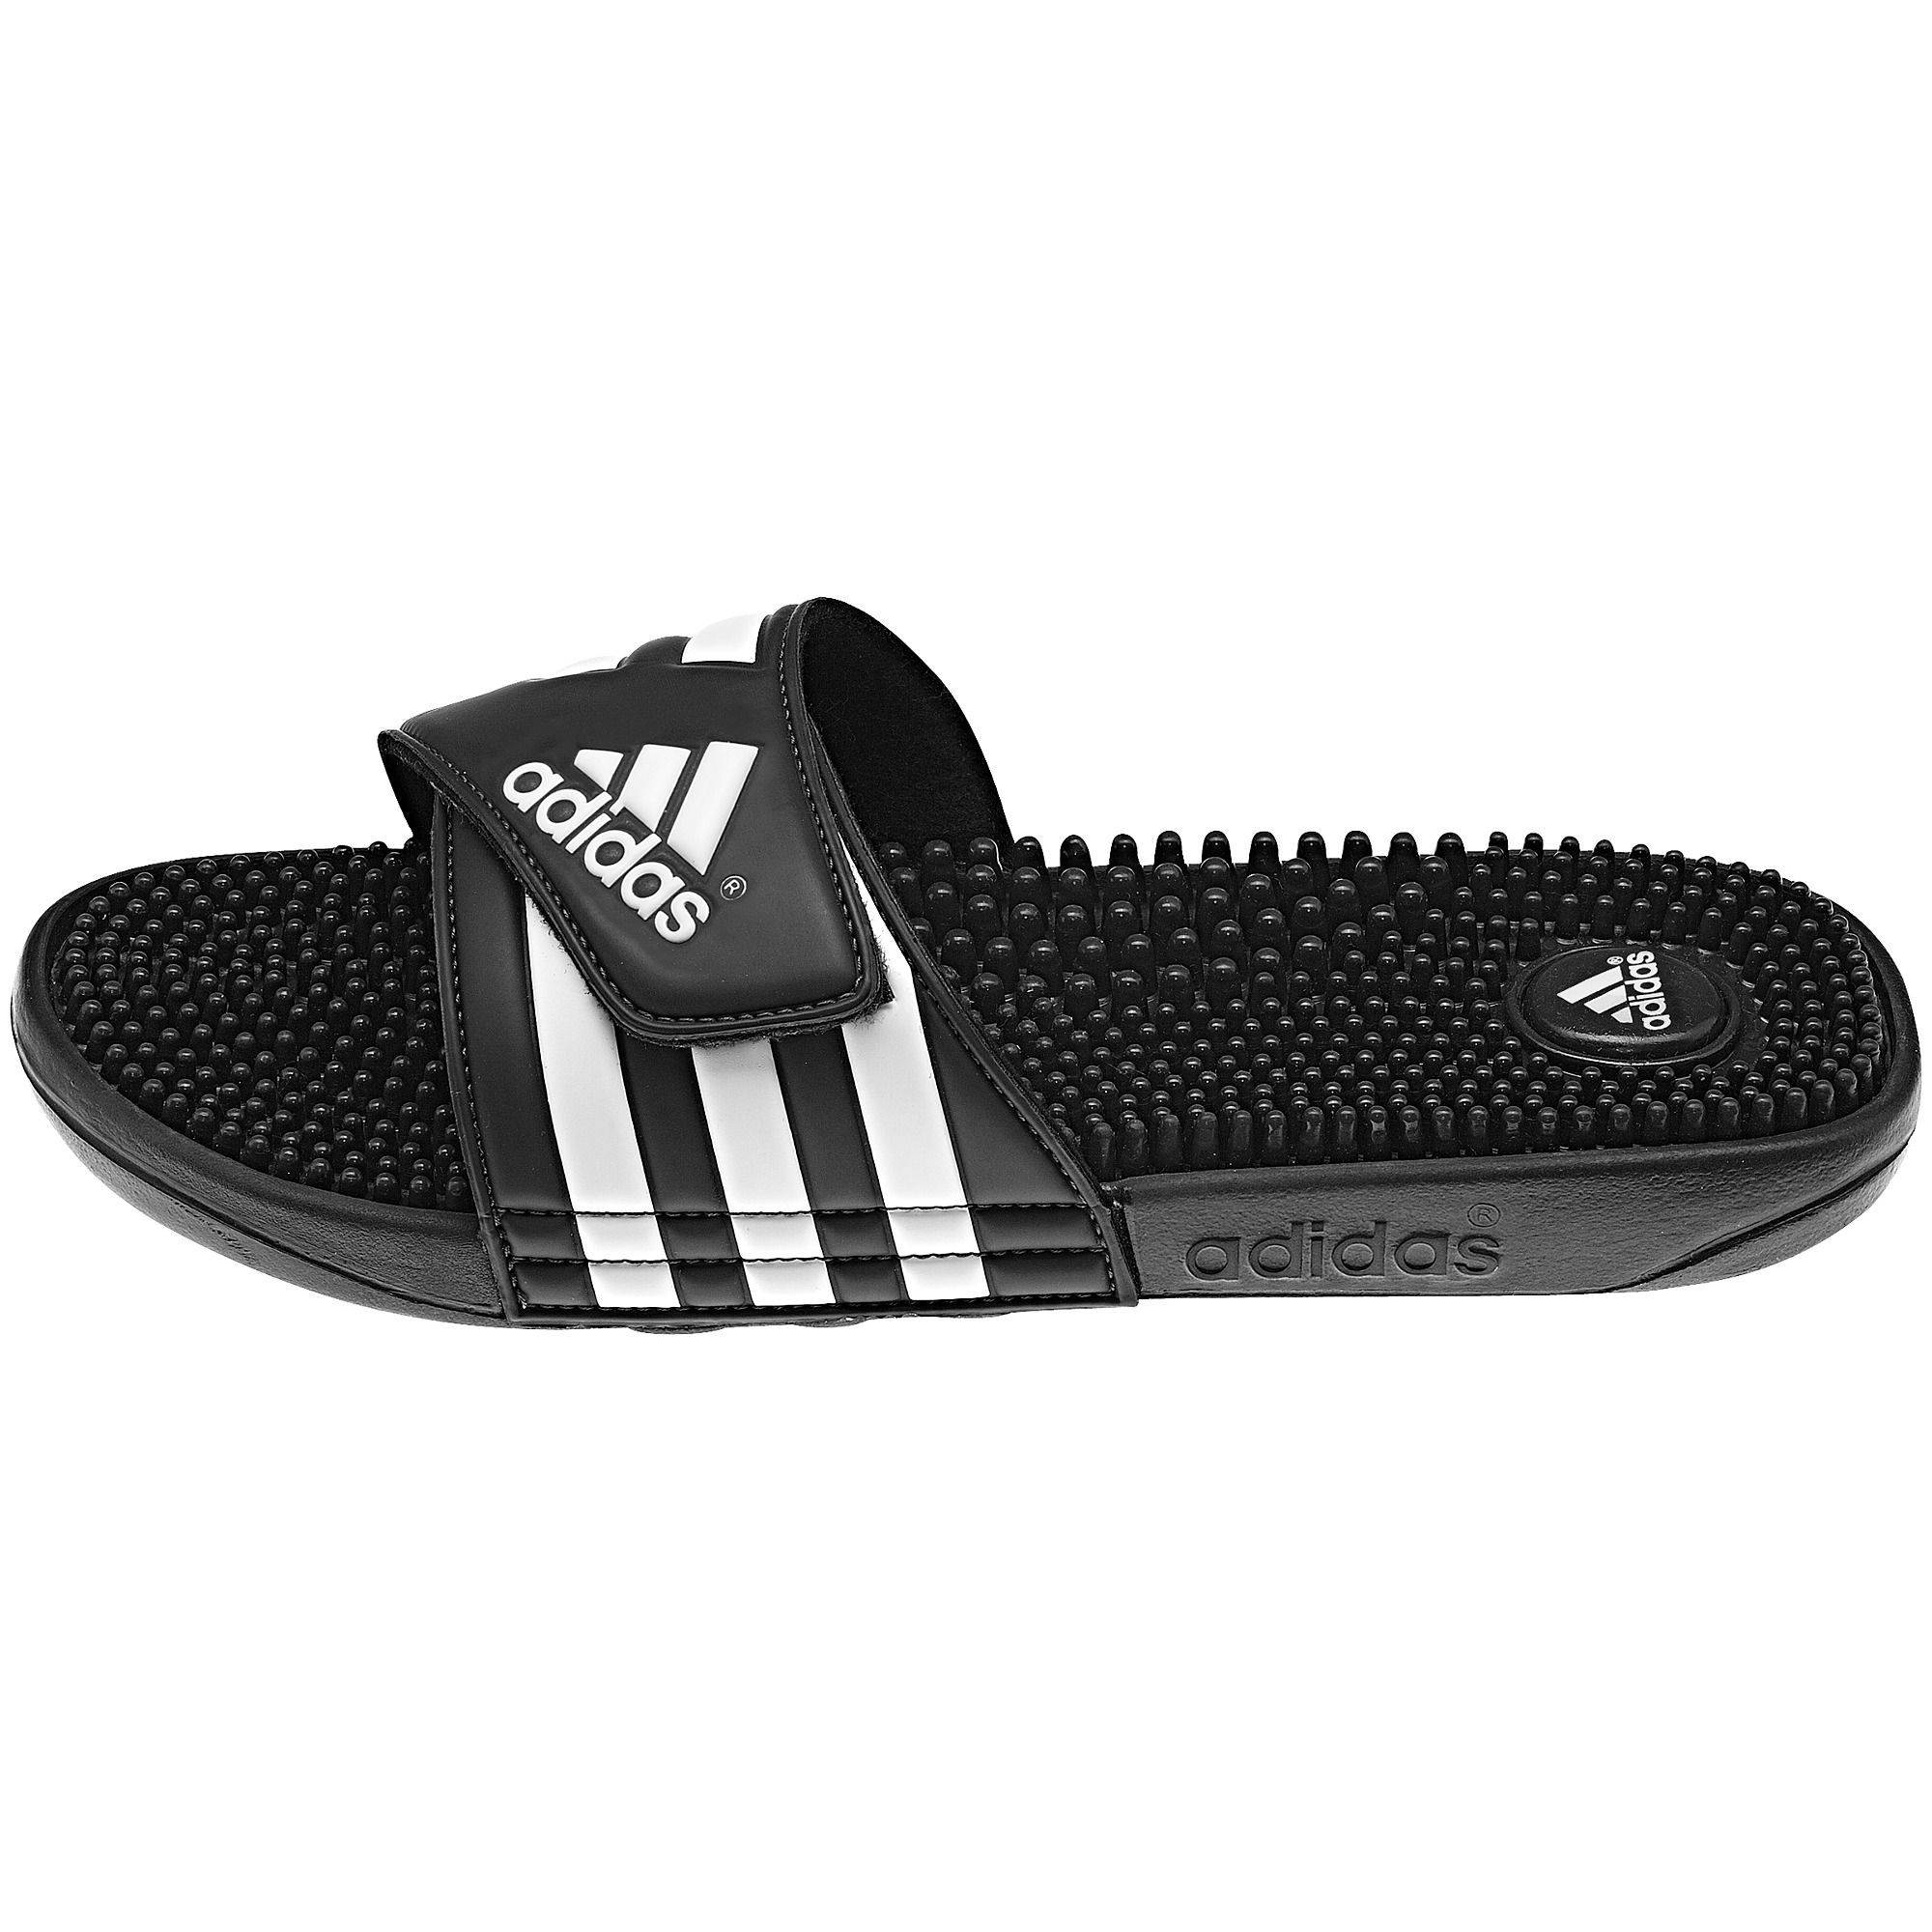 182b1d25d Adidas sandals size 8 (in women s) size 6 (in men s)  30